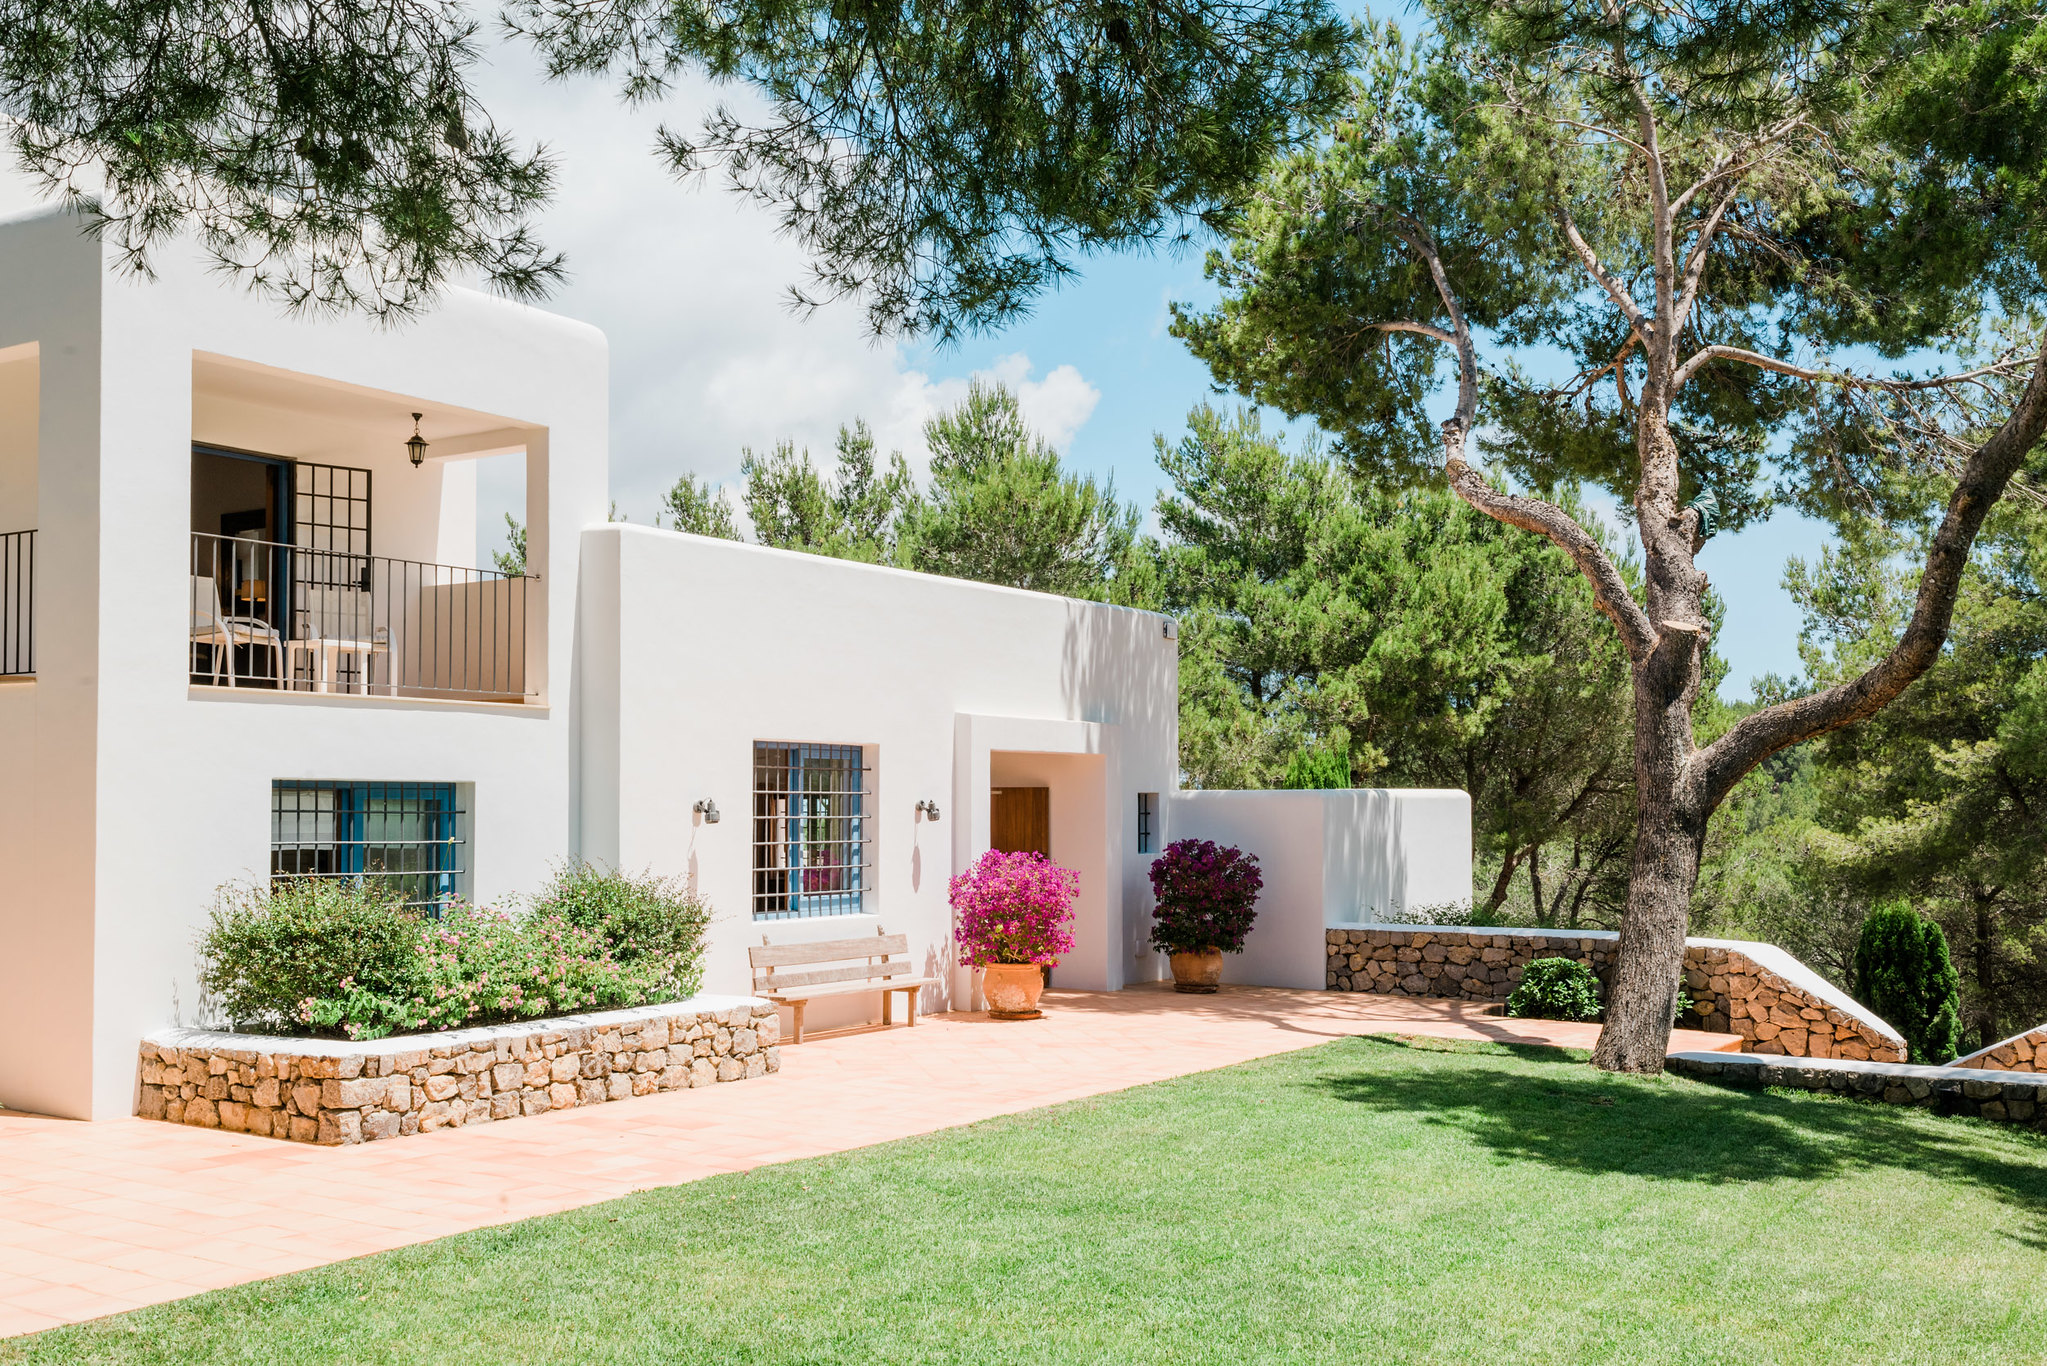 https://www.white-ibiza.com/wp-content/uploads/2020/06/white-ibiza-villas-can-madera-exterior-front-entrance.jpg